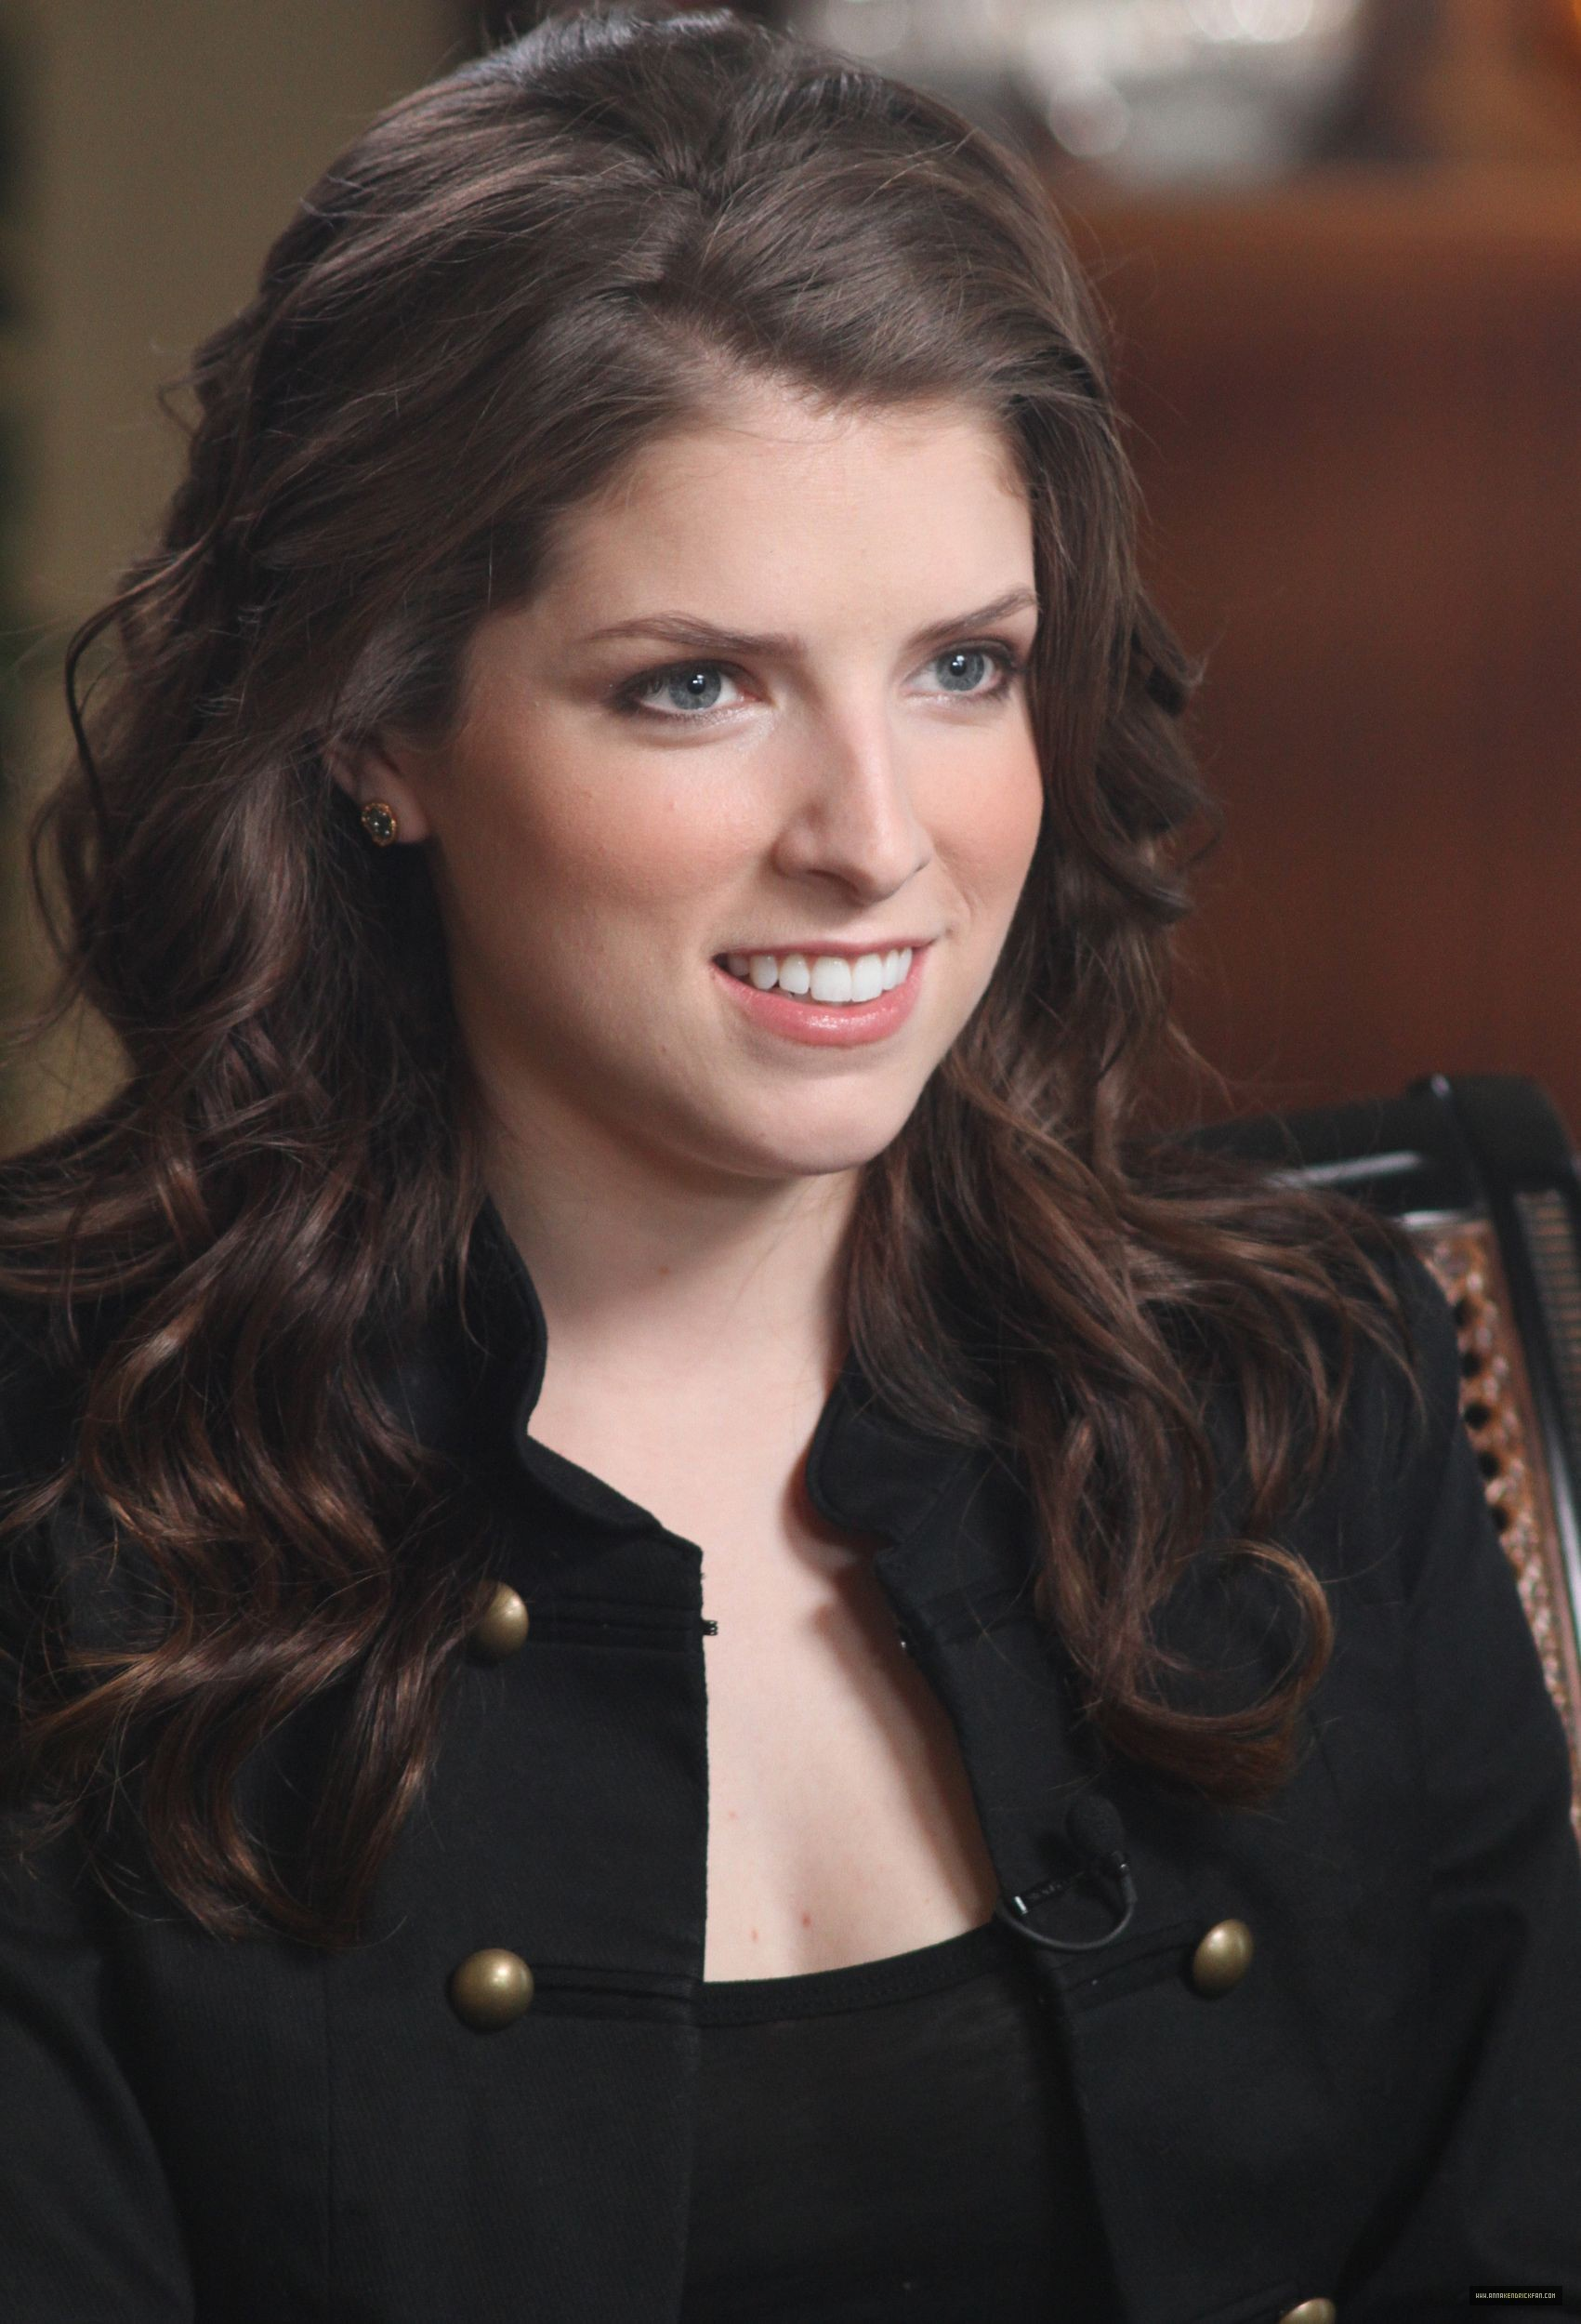 Howie At Home Anna Kendrick Images Anna Kendrick Hd Wallpaper And